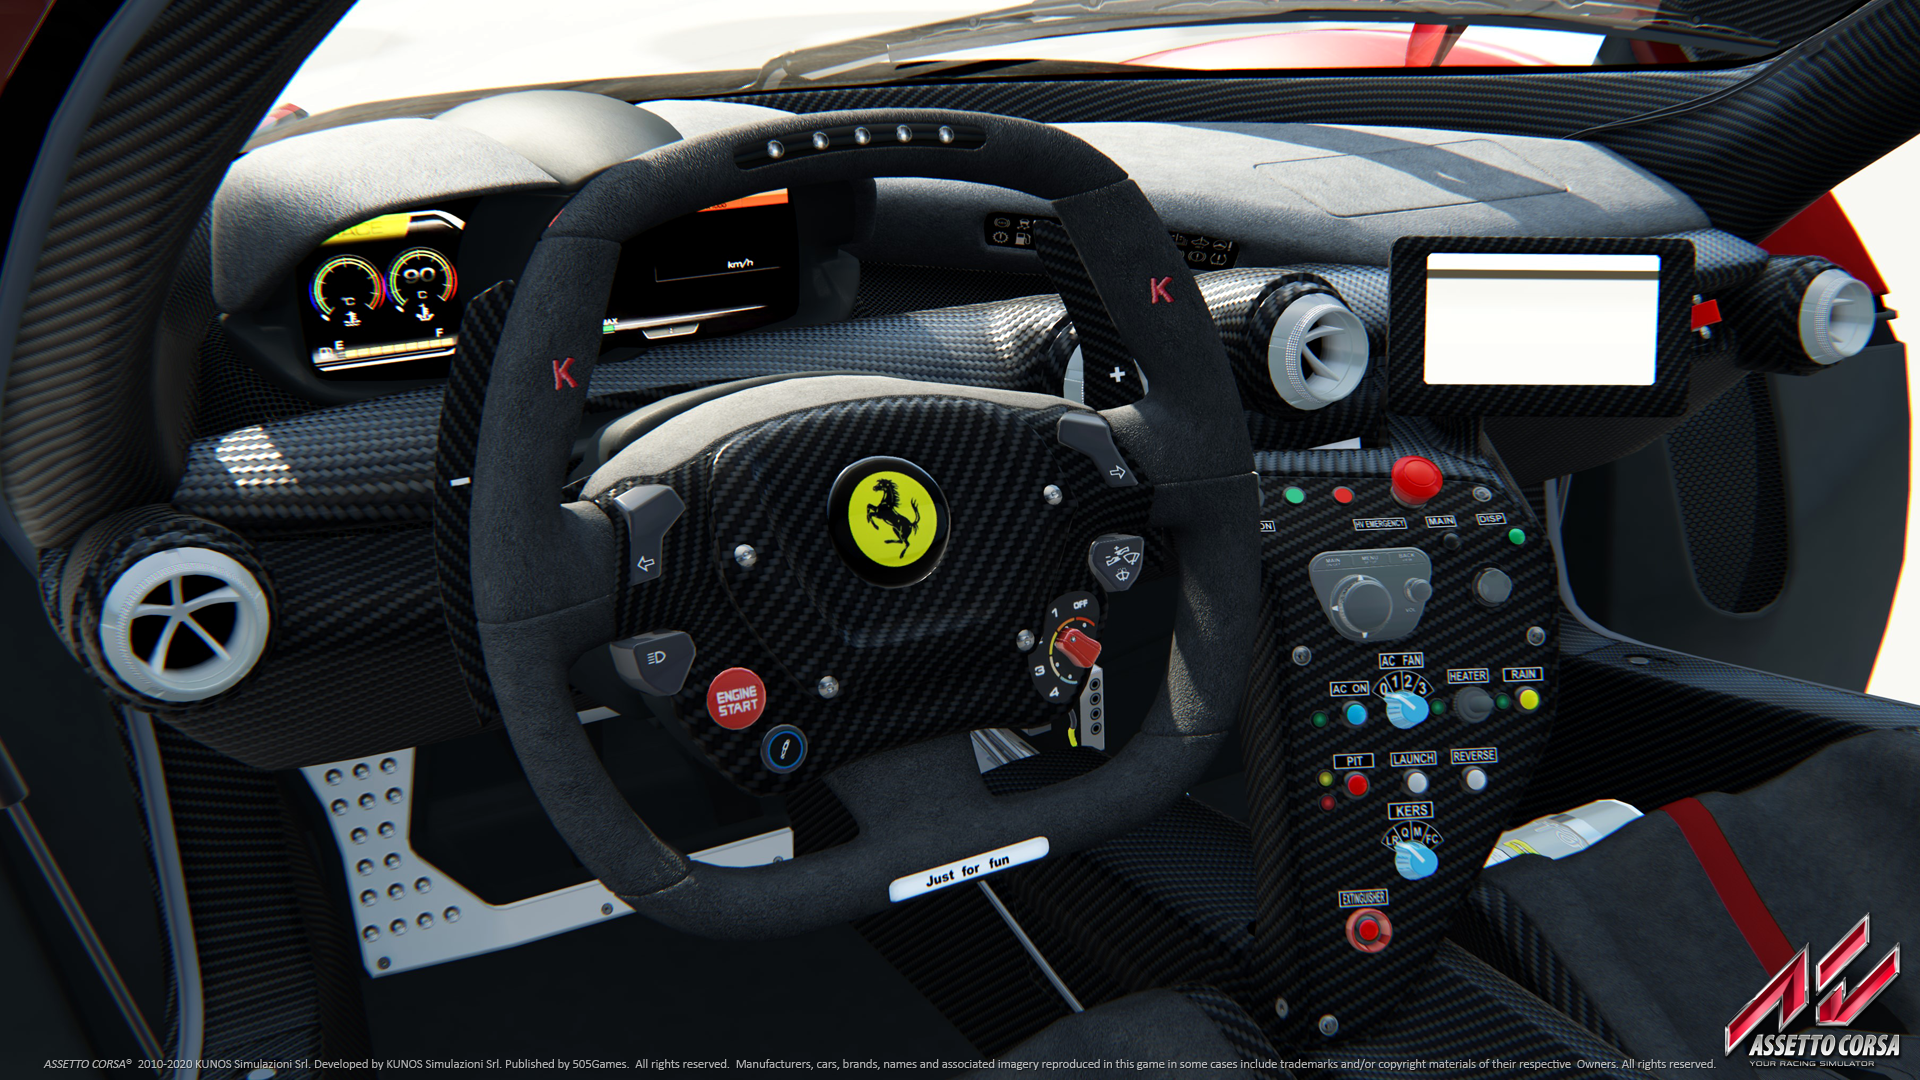 While it's not as pretty as other games, <em>Assetto Corsa</em> still has plenty of detail.